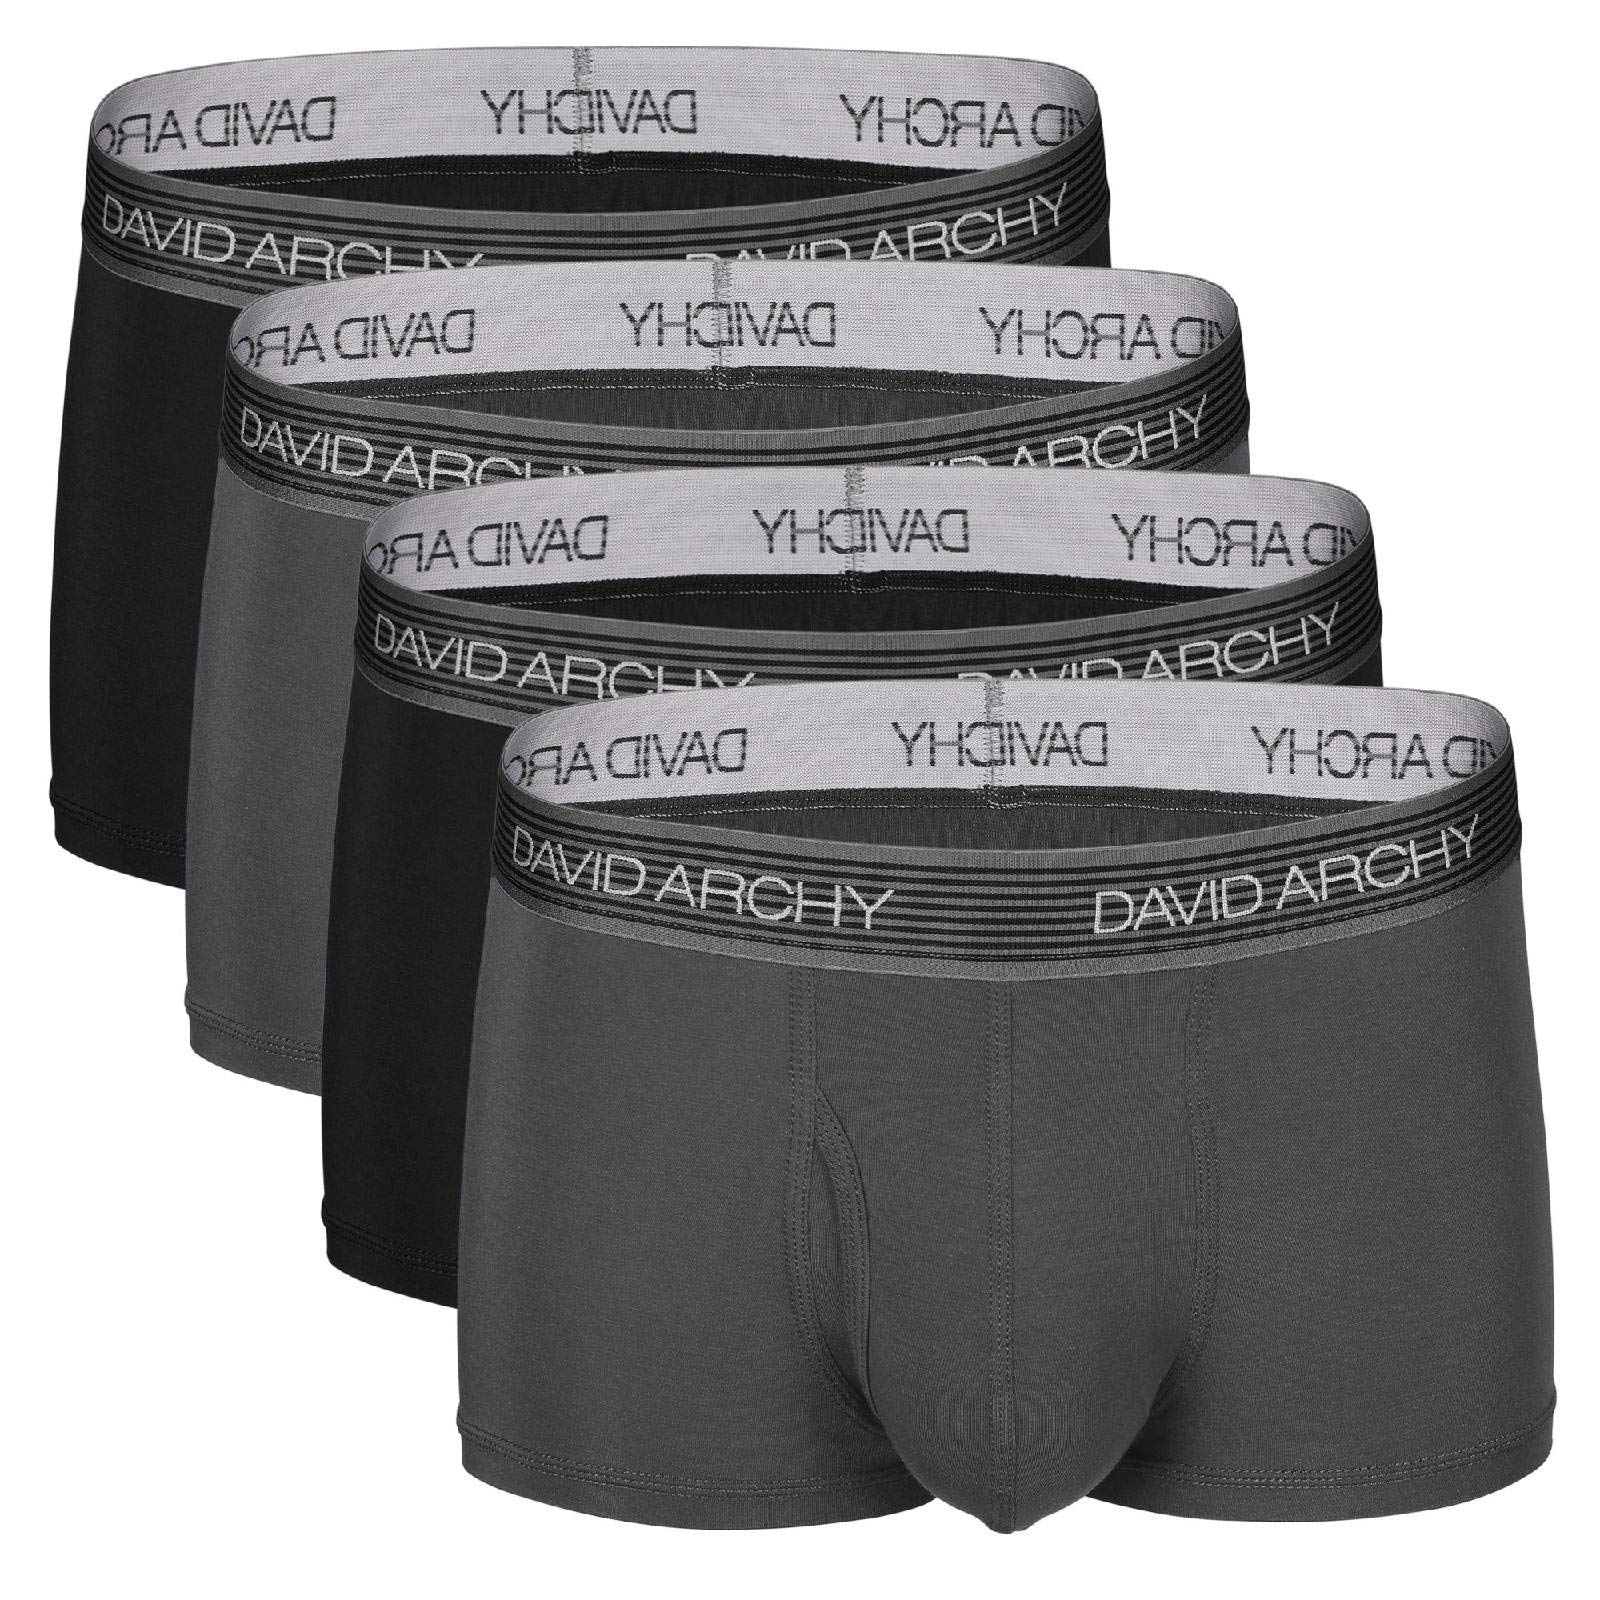 David Archy Men's 4 Pack Ultra Soft Micro Modal Underwear Breathable Trunks with Fly (M, Black/Dark Gray) by David Archy